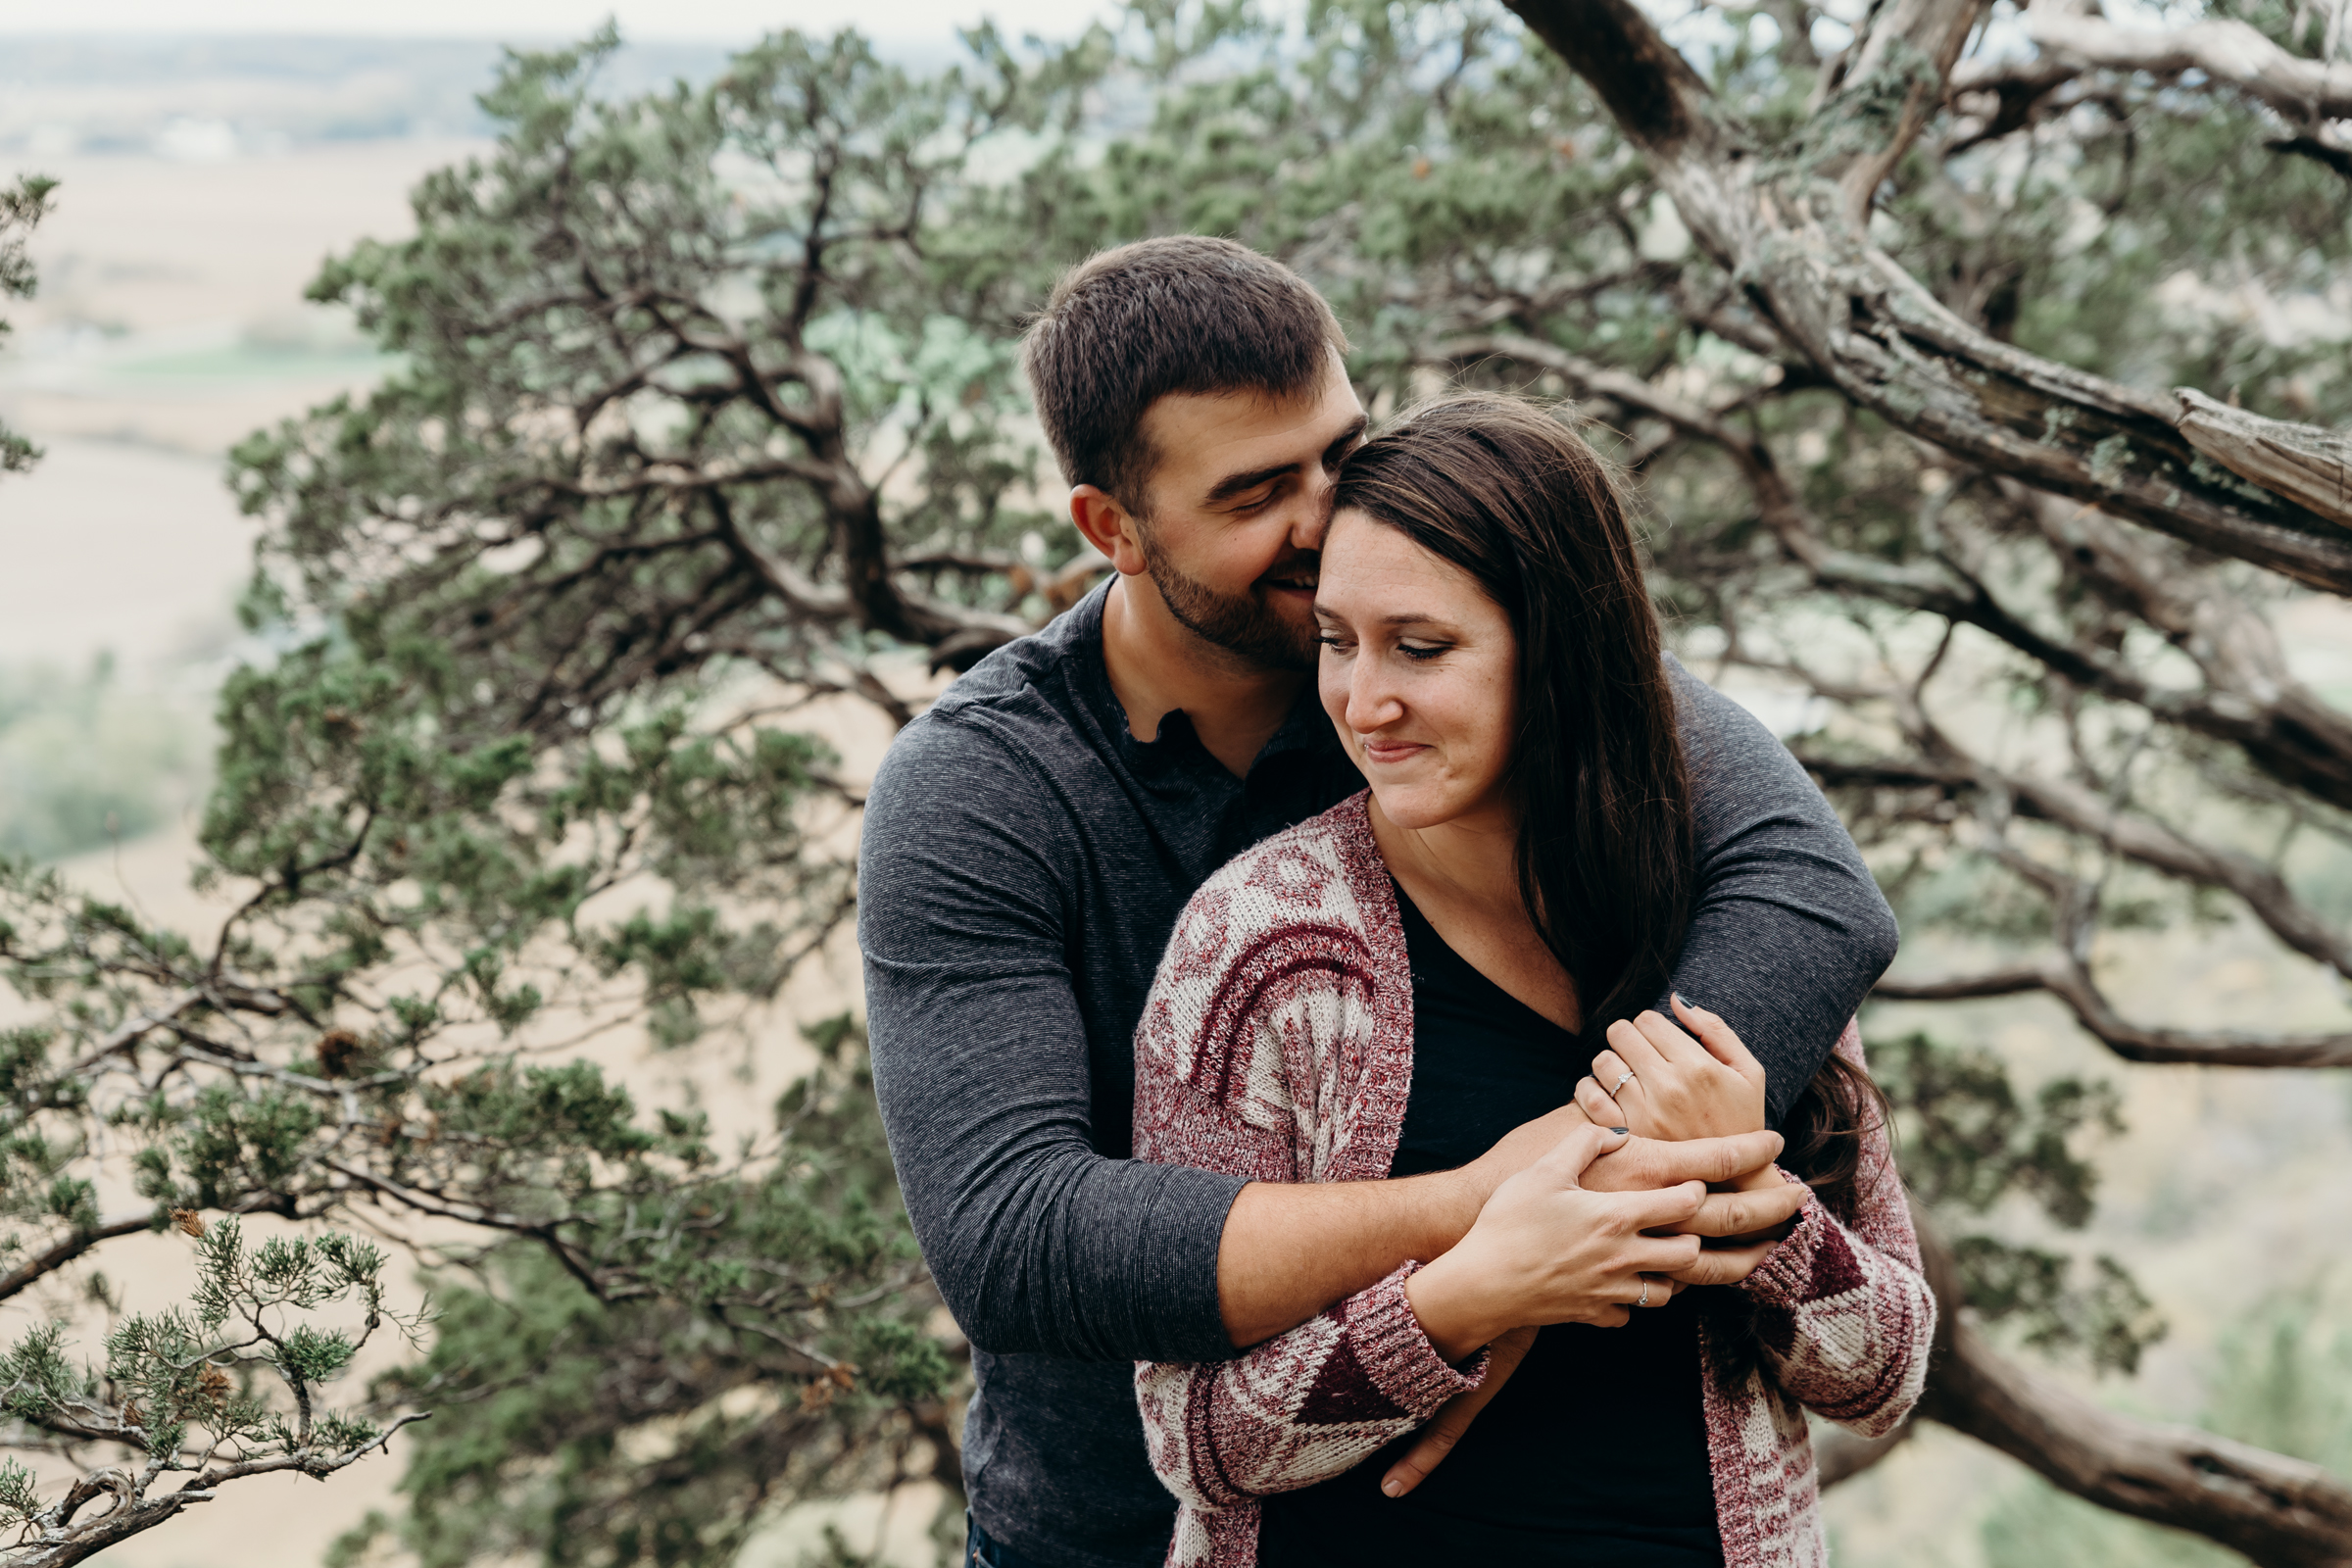 Man wraps his arms around his fiancé and giggles into her hair.